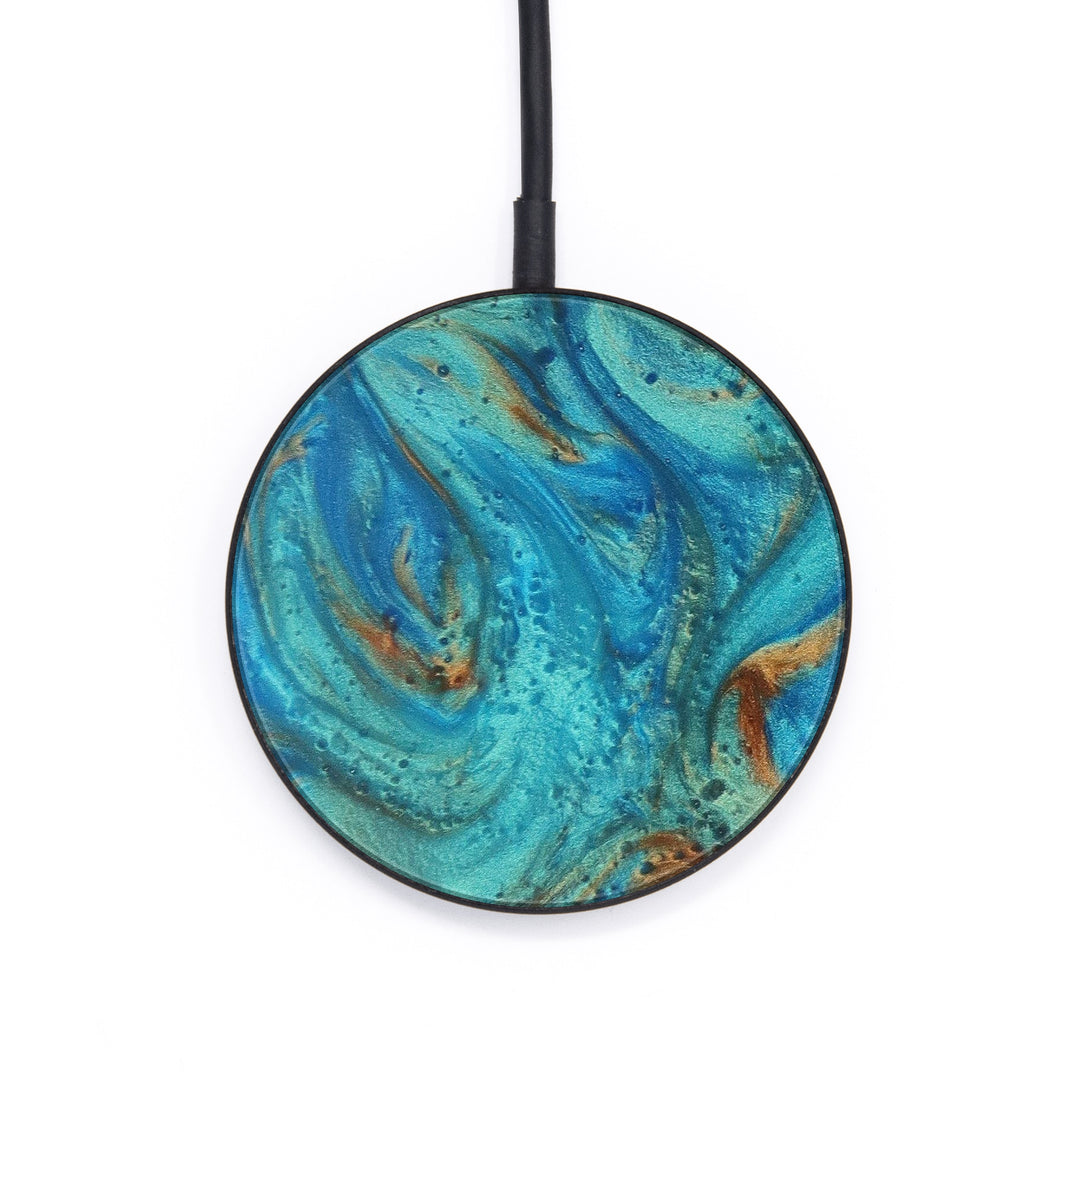 Circle ResinArt Wireless Charger - Arnie (Teal & Gold, 393513)